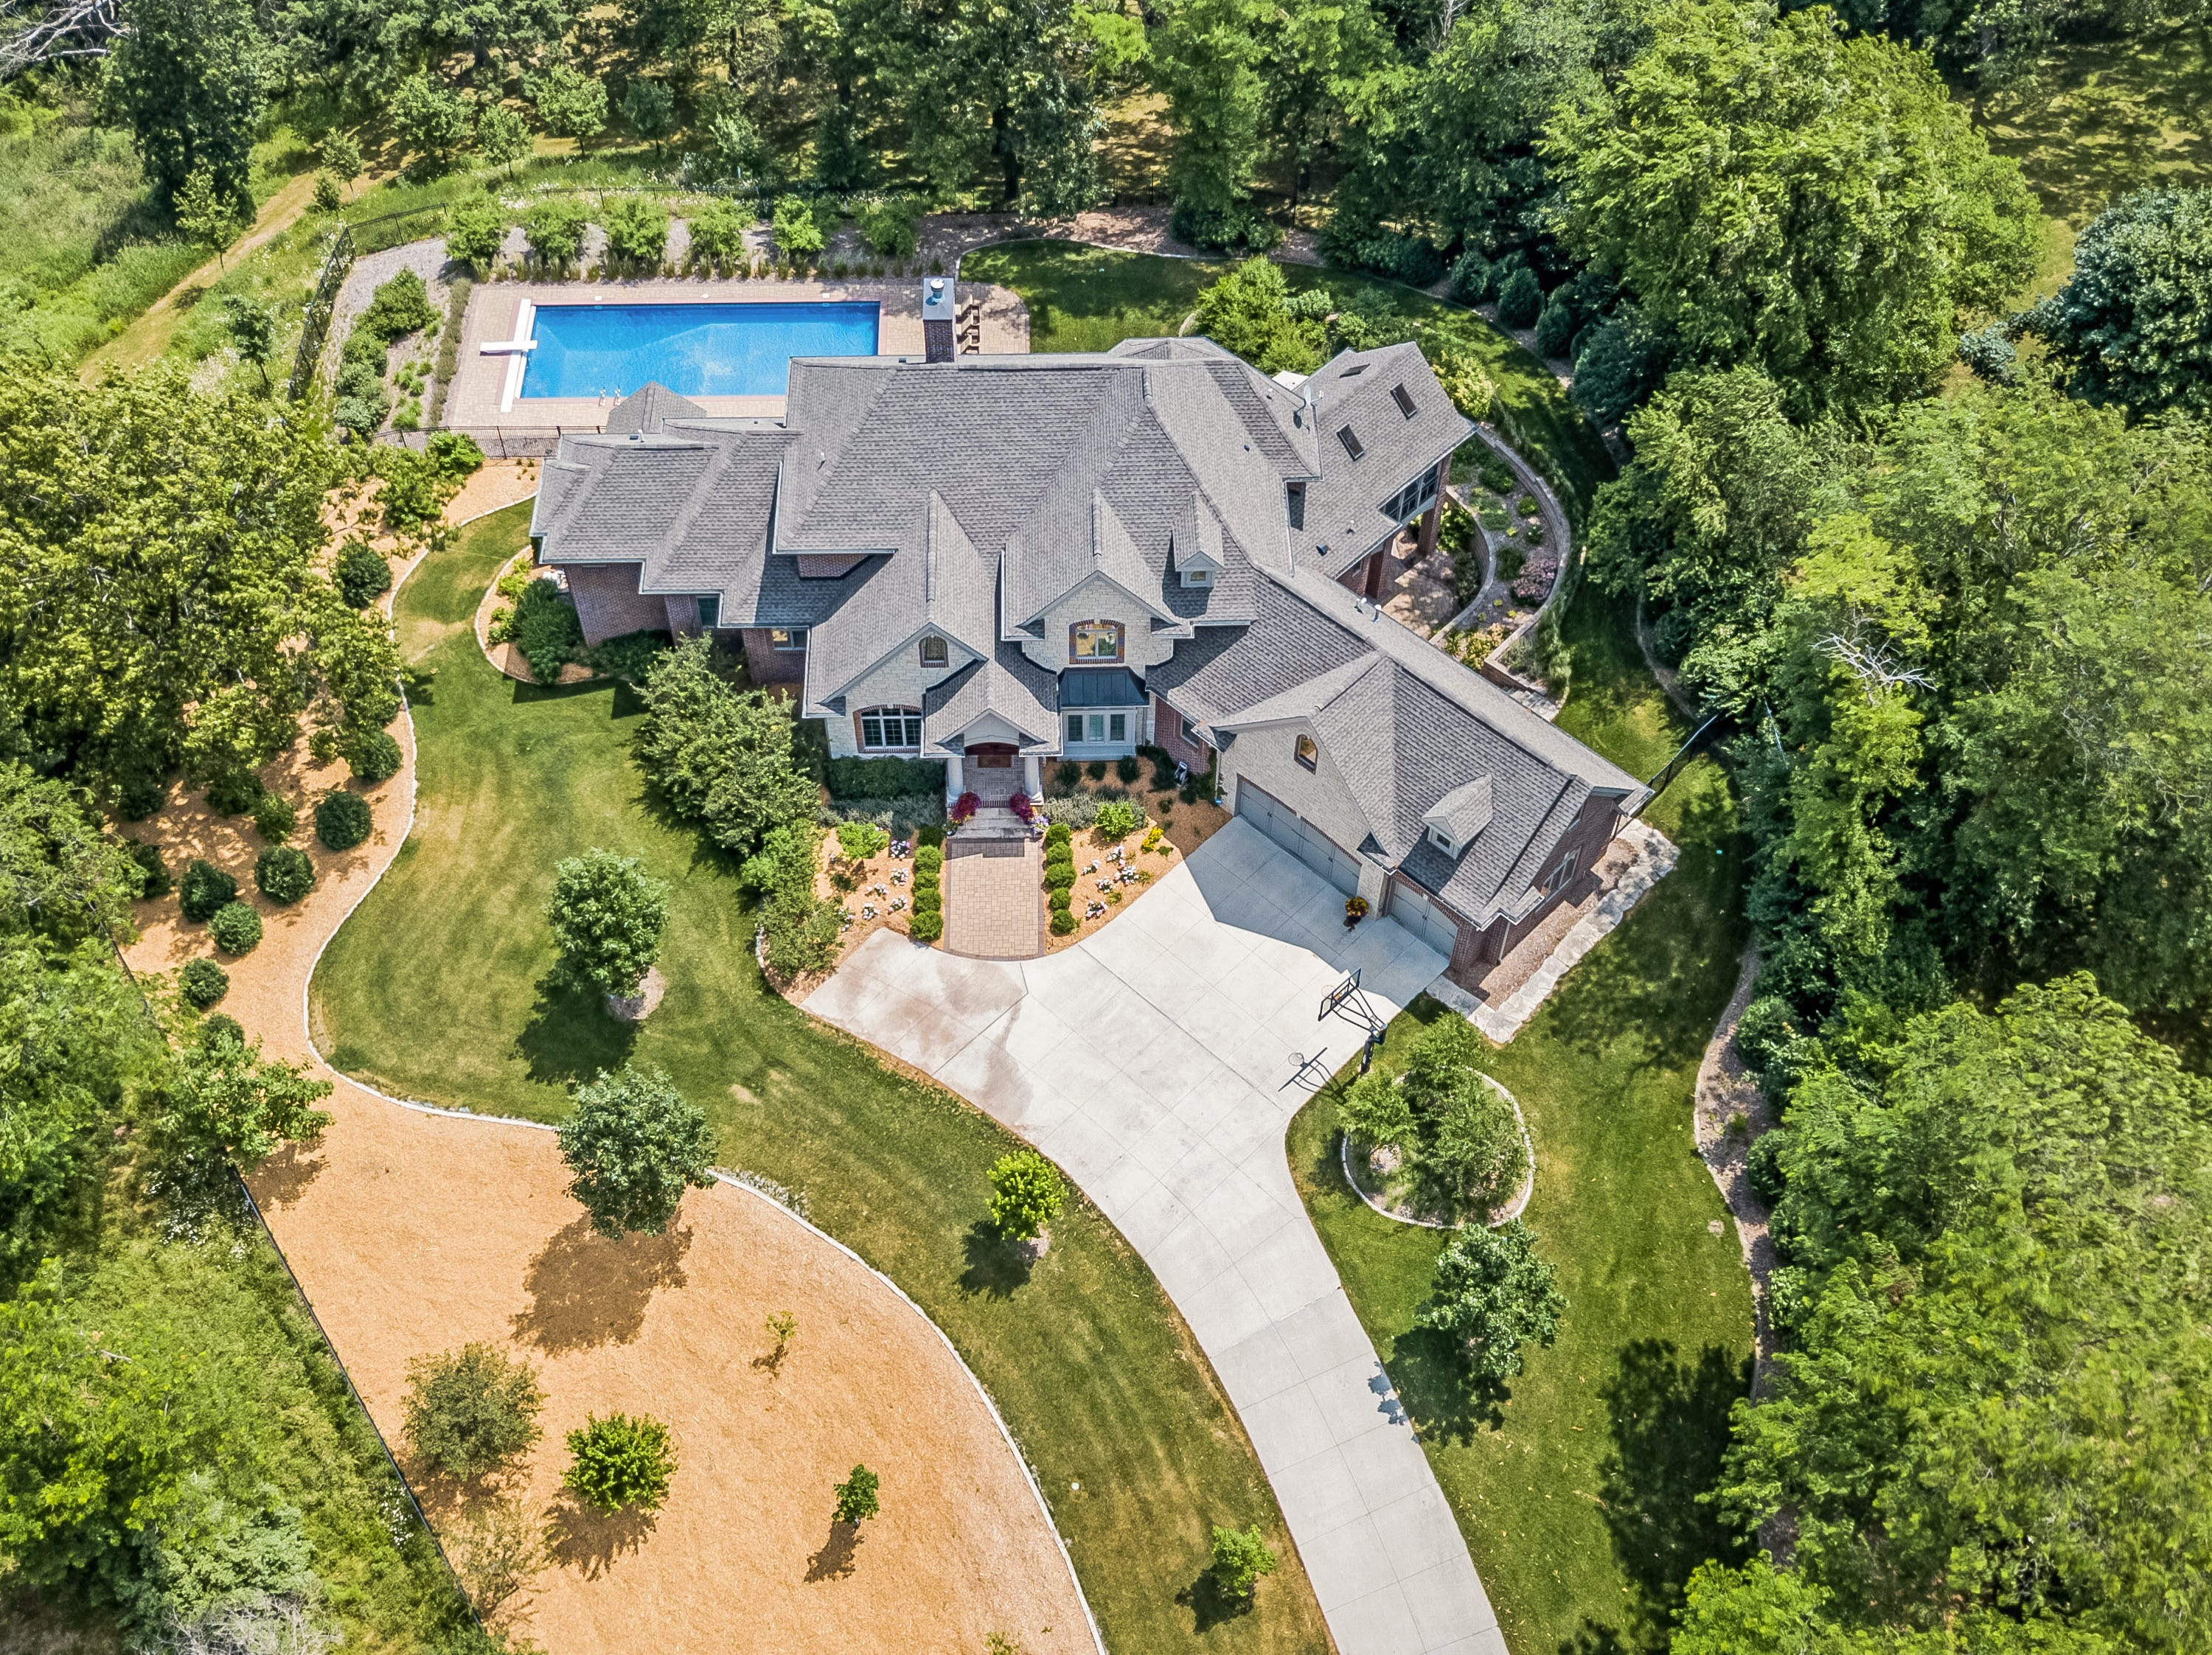 This home on Red Oak Lane in Cumming sold for $1.64 million in 2018. It has five bedrooms, six bathrooms and a salt water pool.